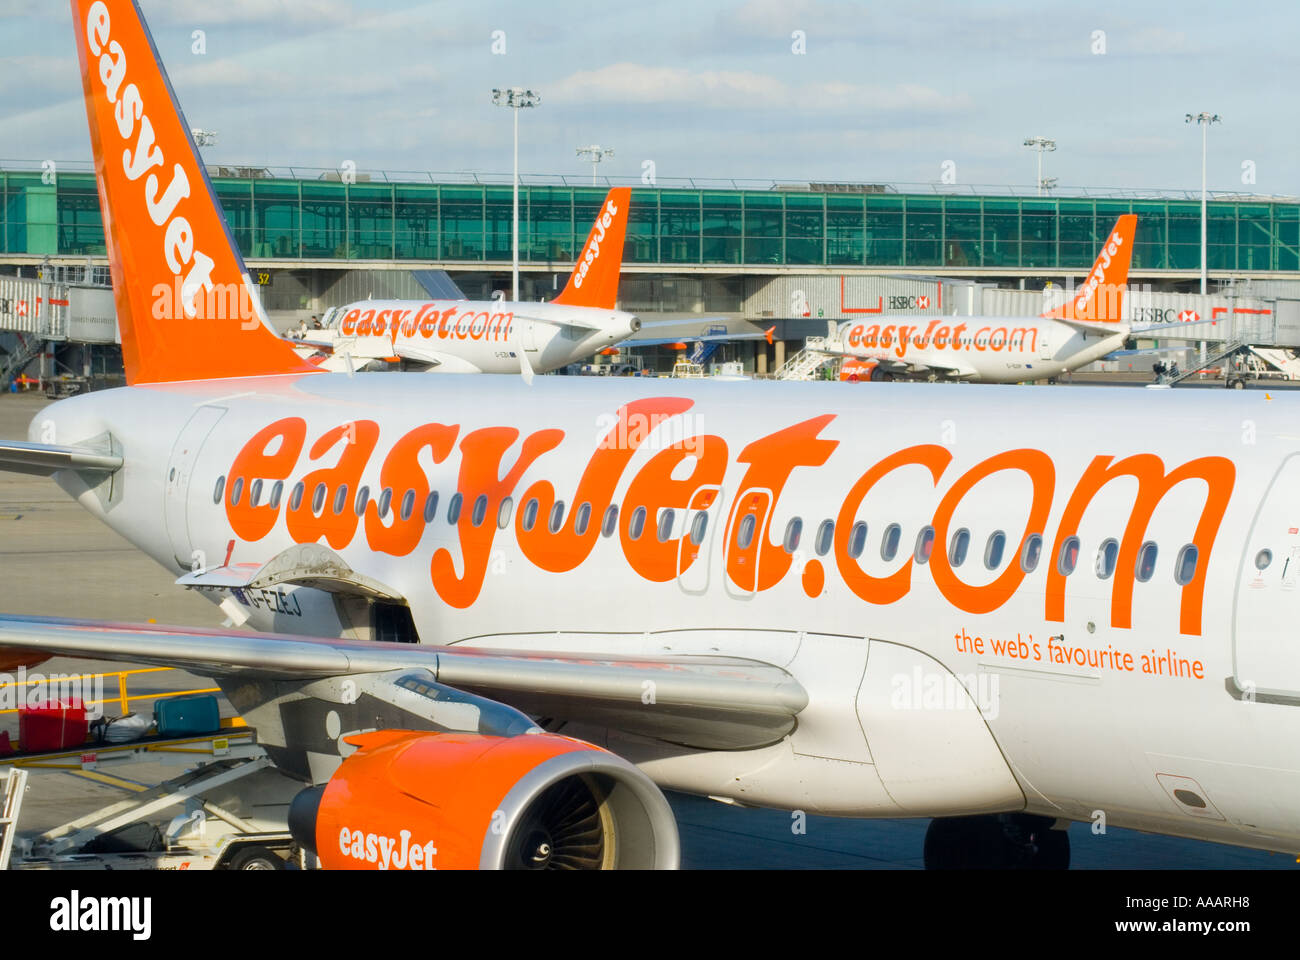 Easyjet planes at Stansted airport England Britain Uk - Stock Image